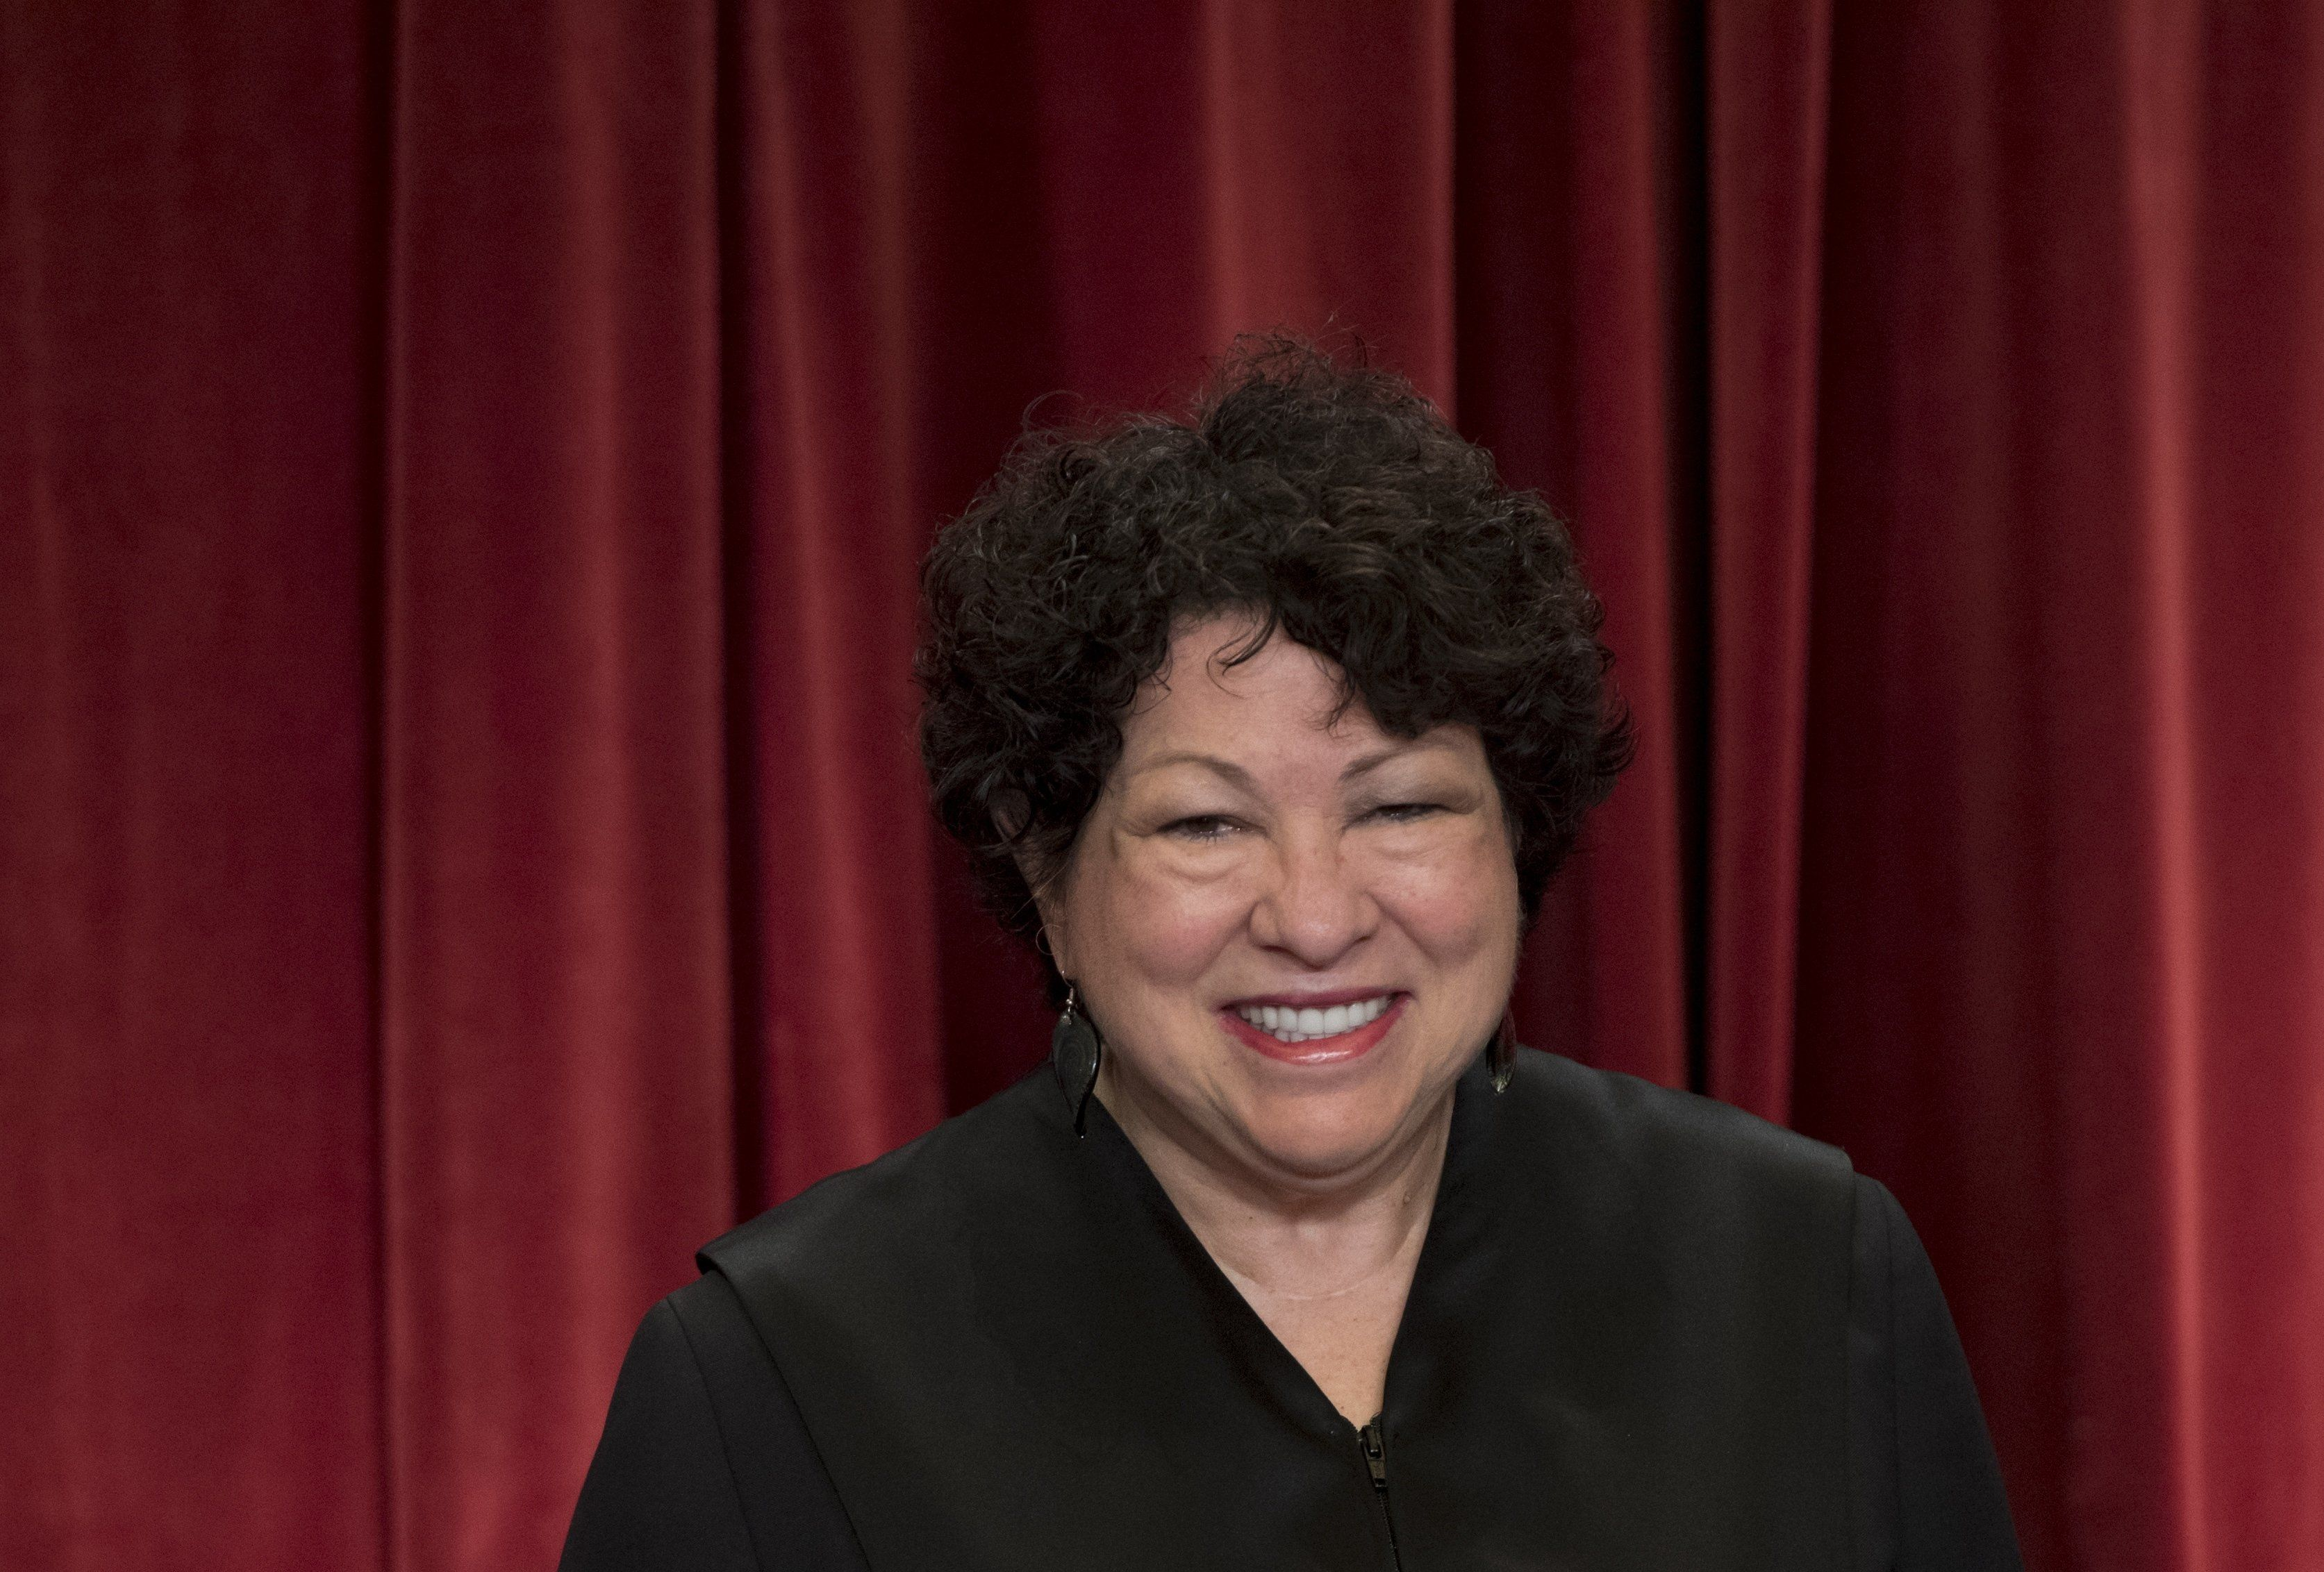 US Supreme Court Associate Justice Sonia Sotomayor stands for an official photo with other members of the US Supreme Court in the Supreme Court in Washington, DC, June 1, 2017. / AFP PHOTO / SAUL LOEB        (Photo credit should read SAUL LOEB/AFP/Getty Images)